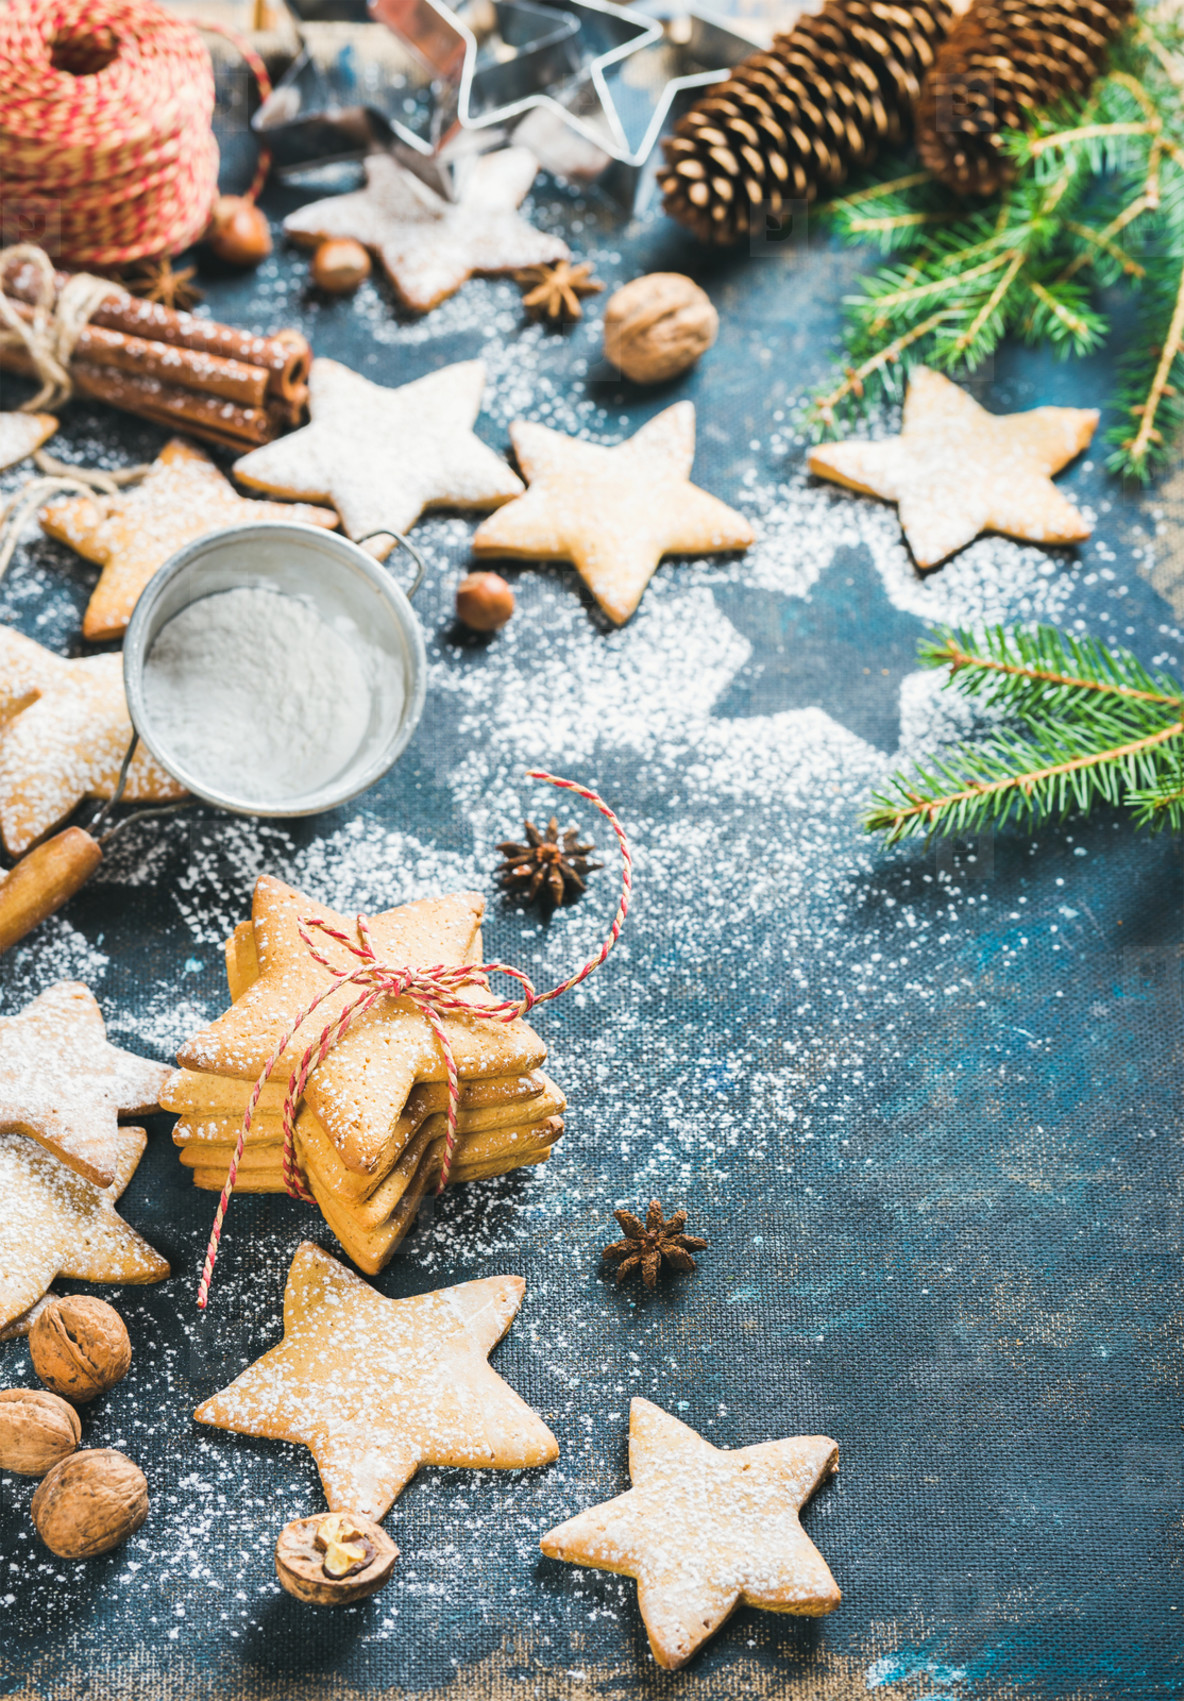 Christmas star shaped cookies with cinnamon  anise and nuts